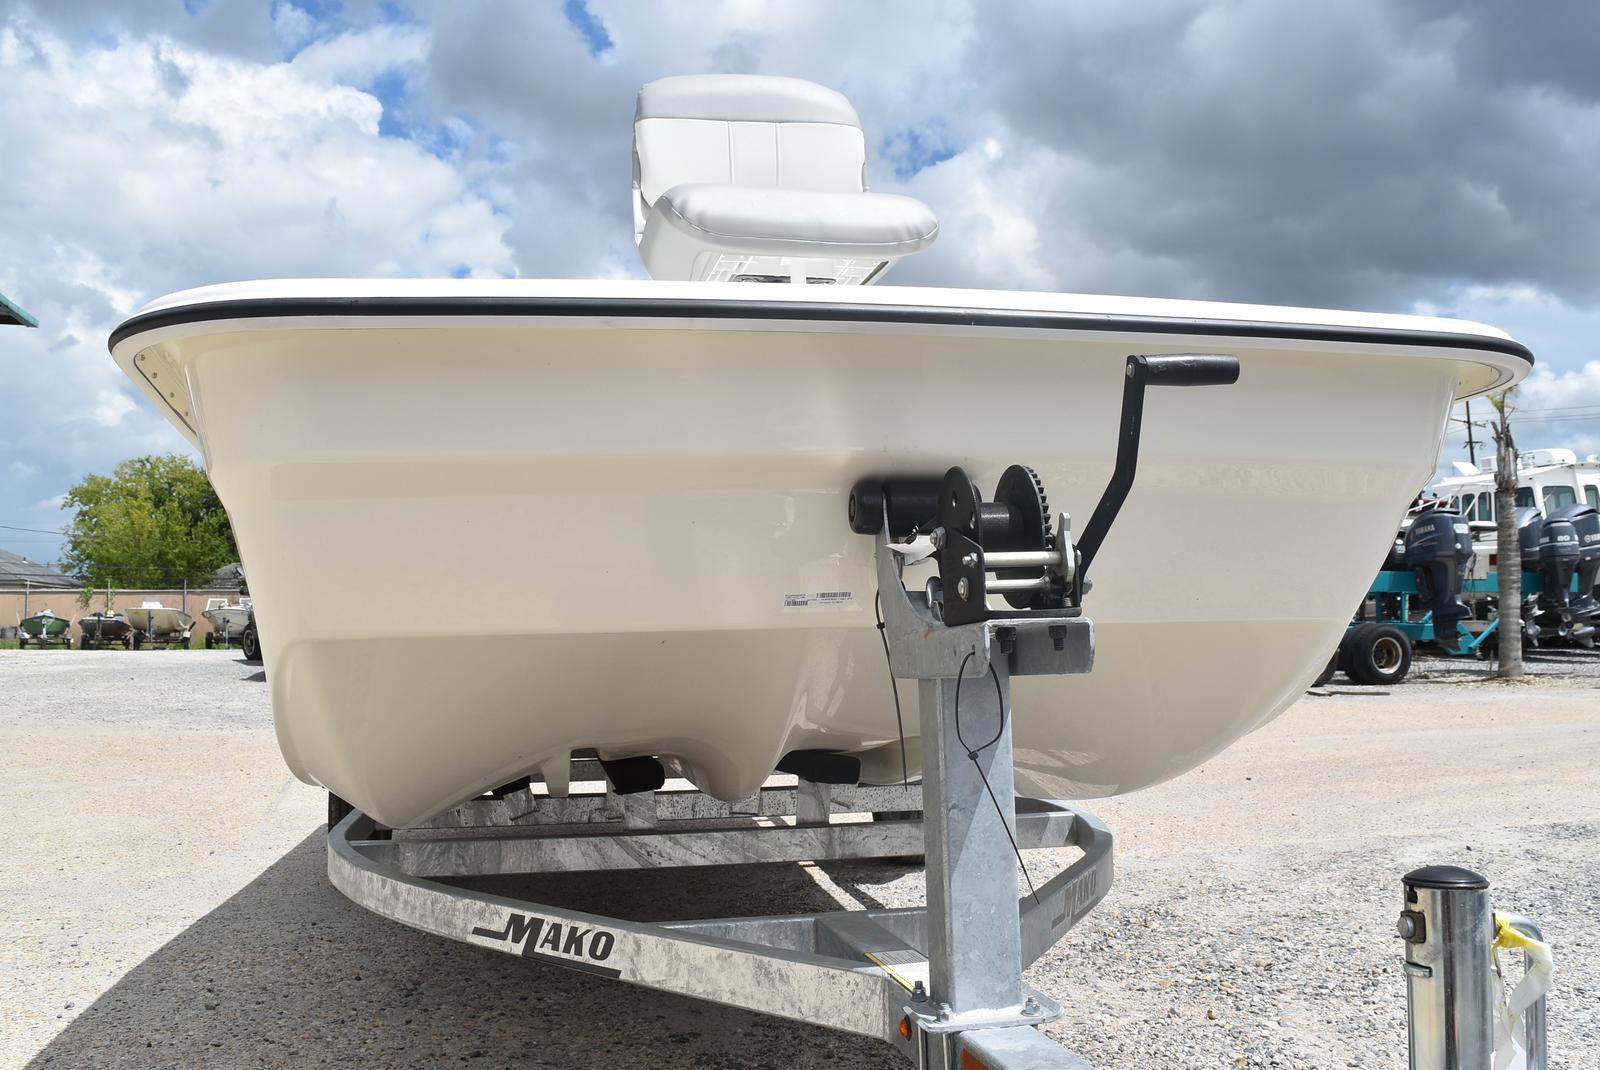 2020 Mako boat for sale, model of the boat is Pro Skiff 17, 75 ELPT & Image # 364 of 702